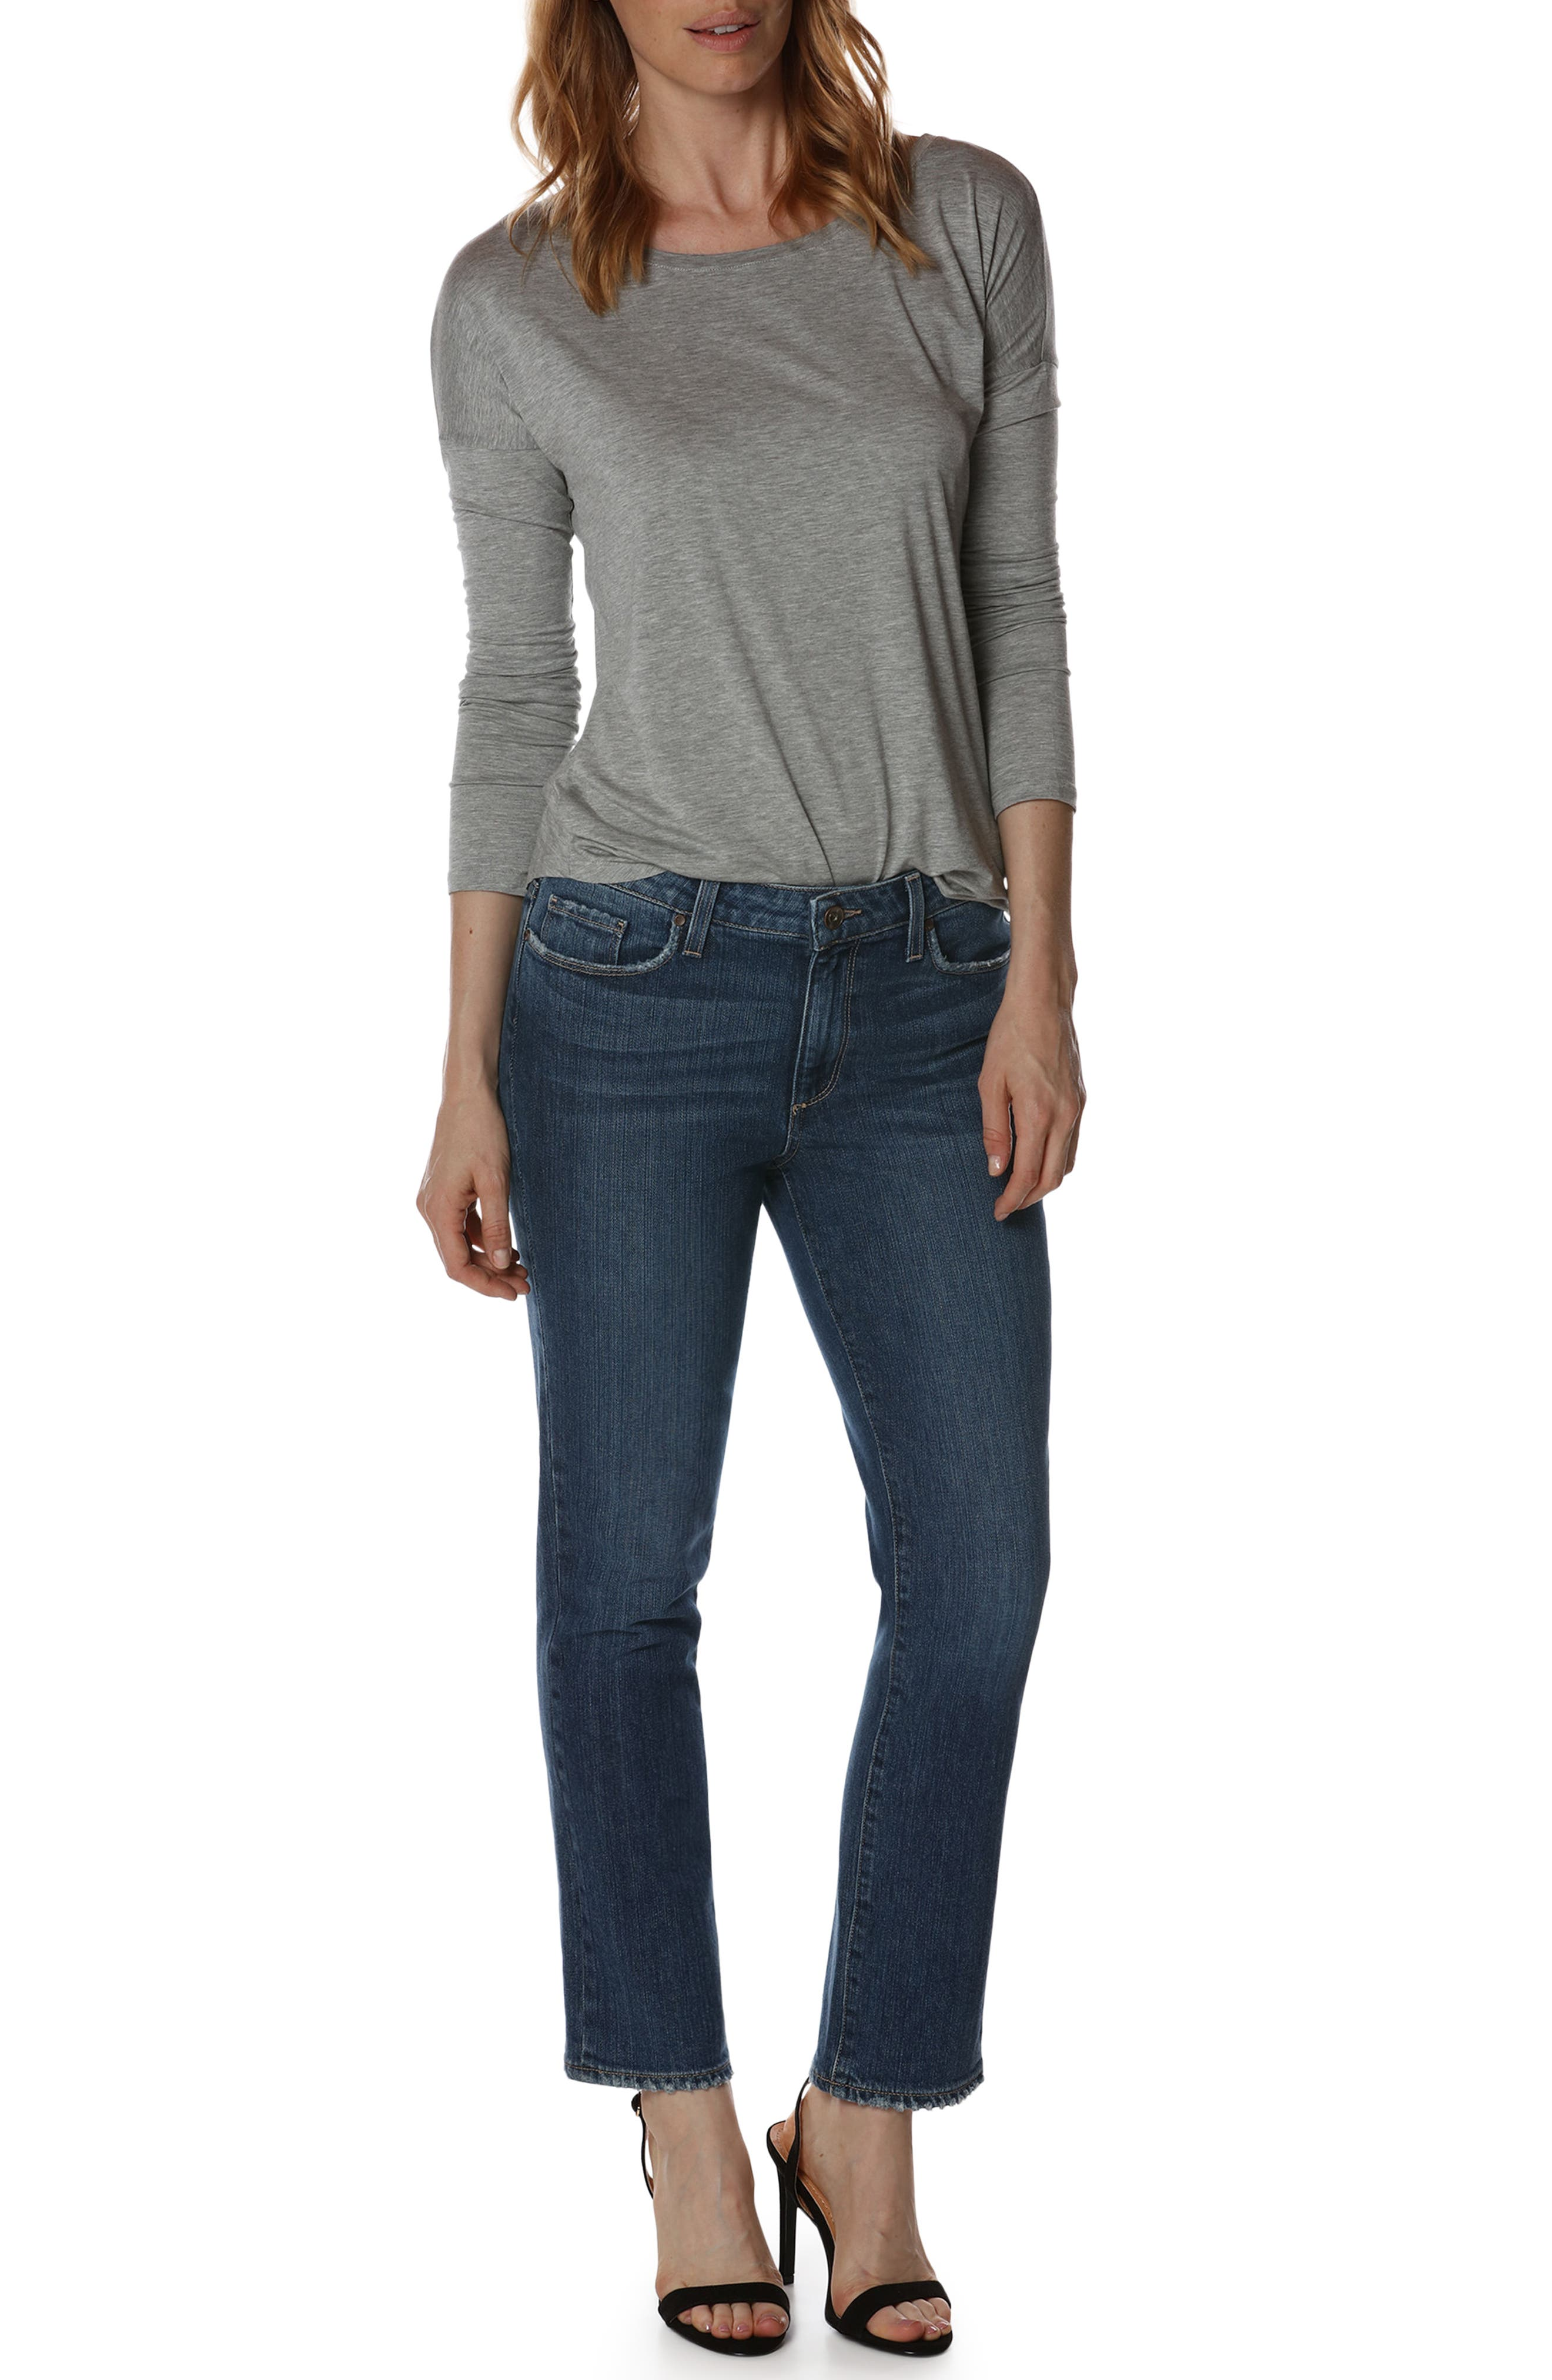 Jacqueline High Waist Ankle Straight Leg Jeans,                             Alternate thumbnail 2, color,                             Good Life Embroidery